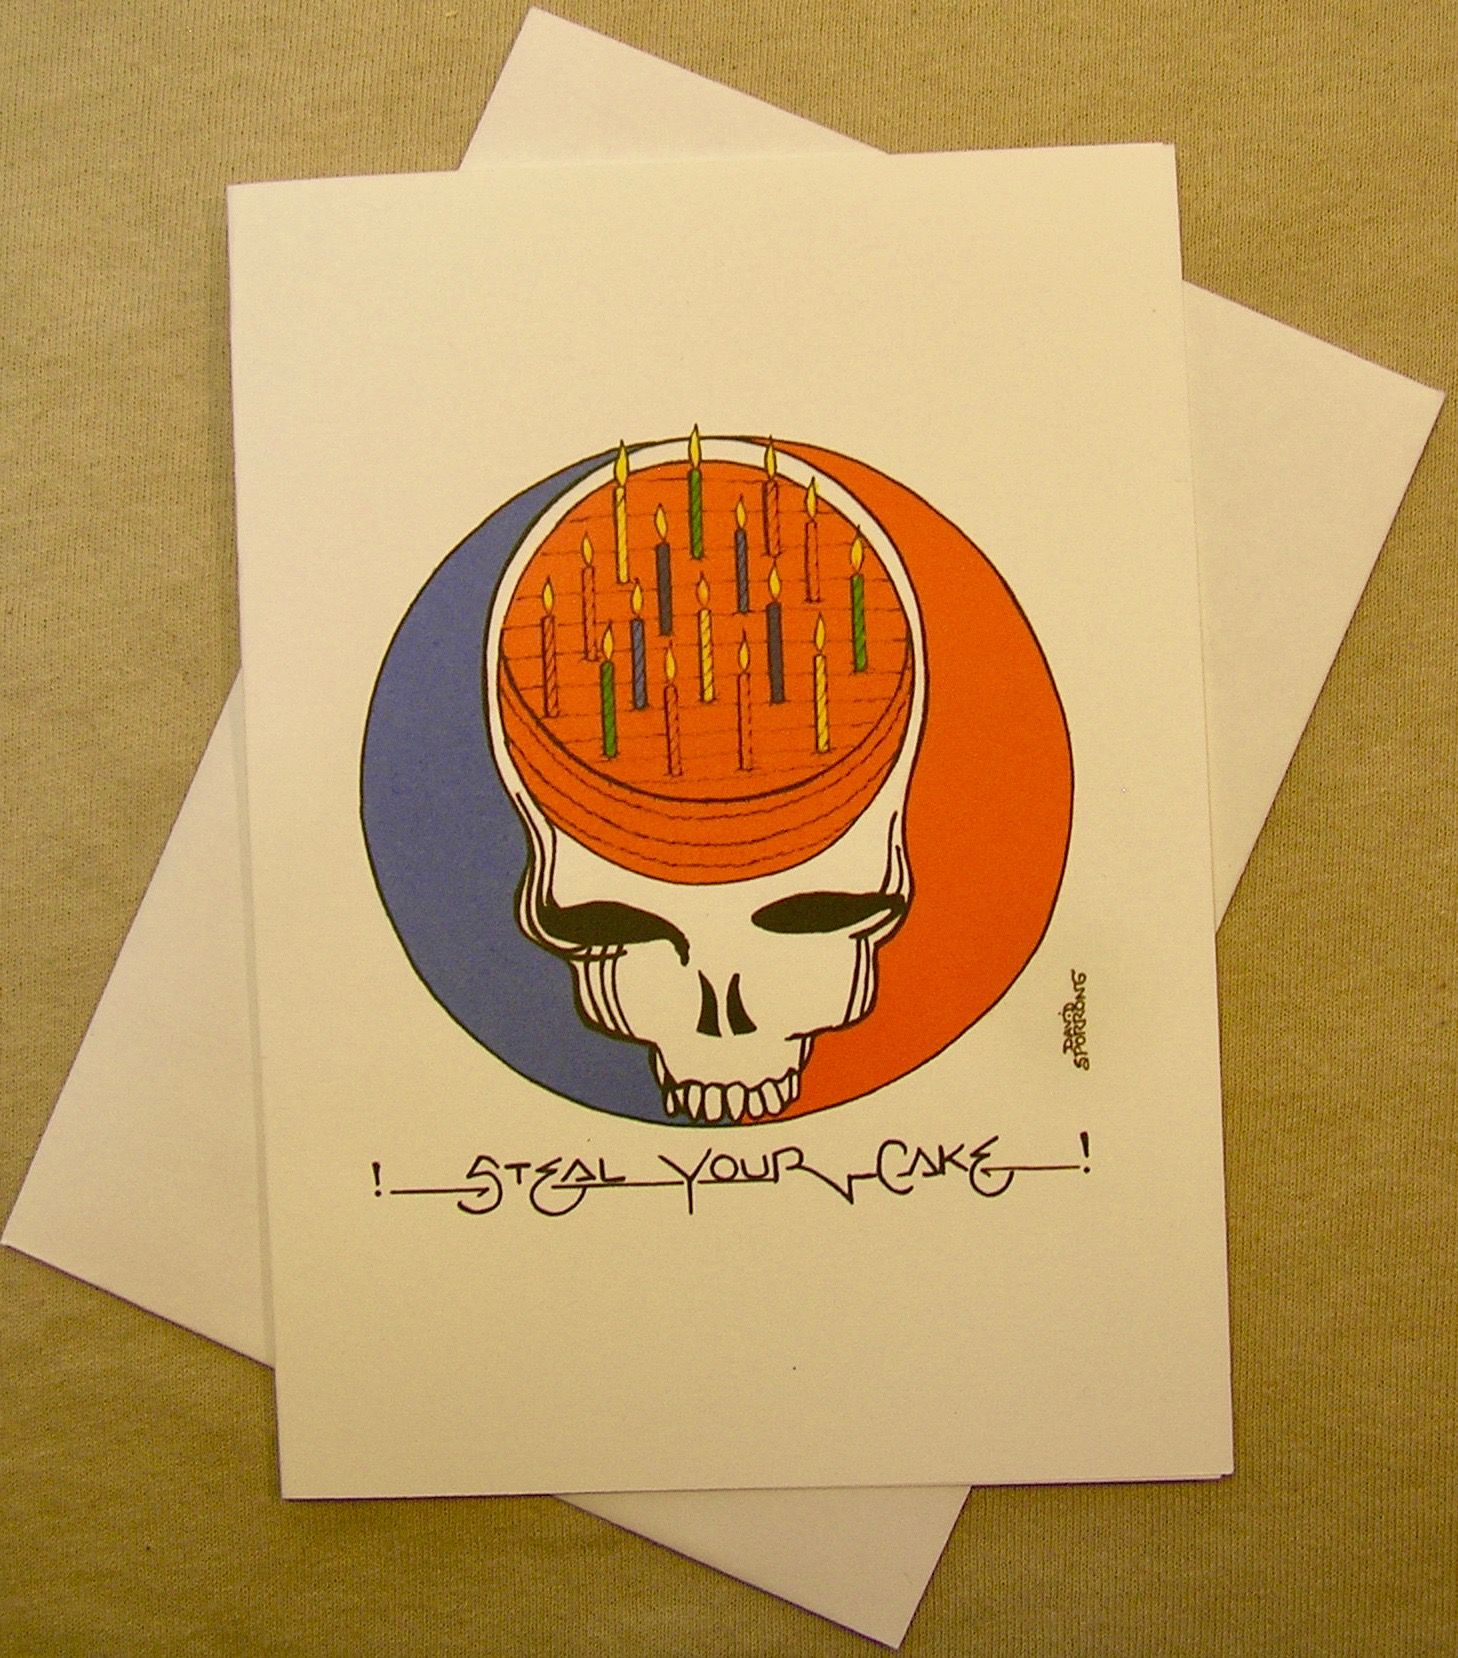 Steal your cake available in the grateful dead birthday section available in the grateful dead birthday section of my m4hsunfo Choice Image